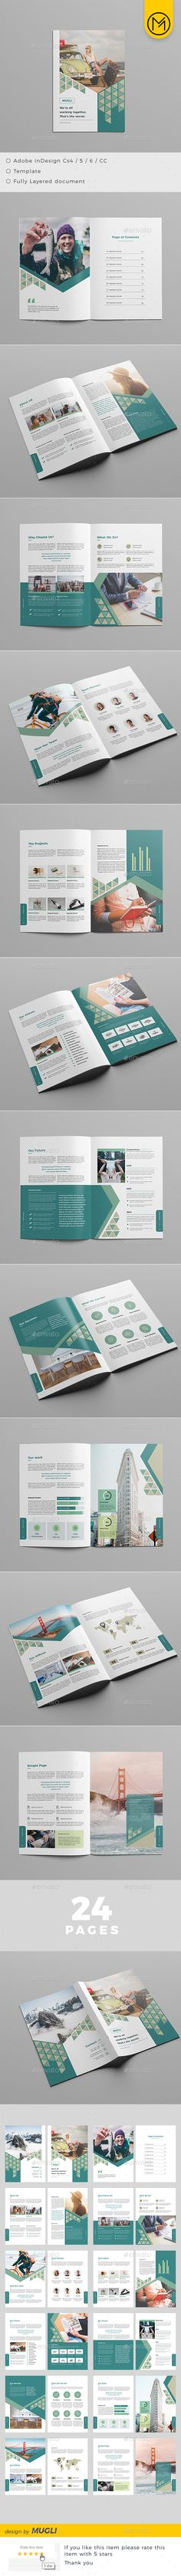 Brochure — InDesign INDD #template #marketing • Download ➝ https://graphicriver.net/item/brochure/19210751?ref=pxcr